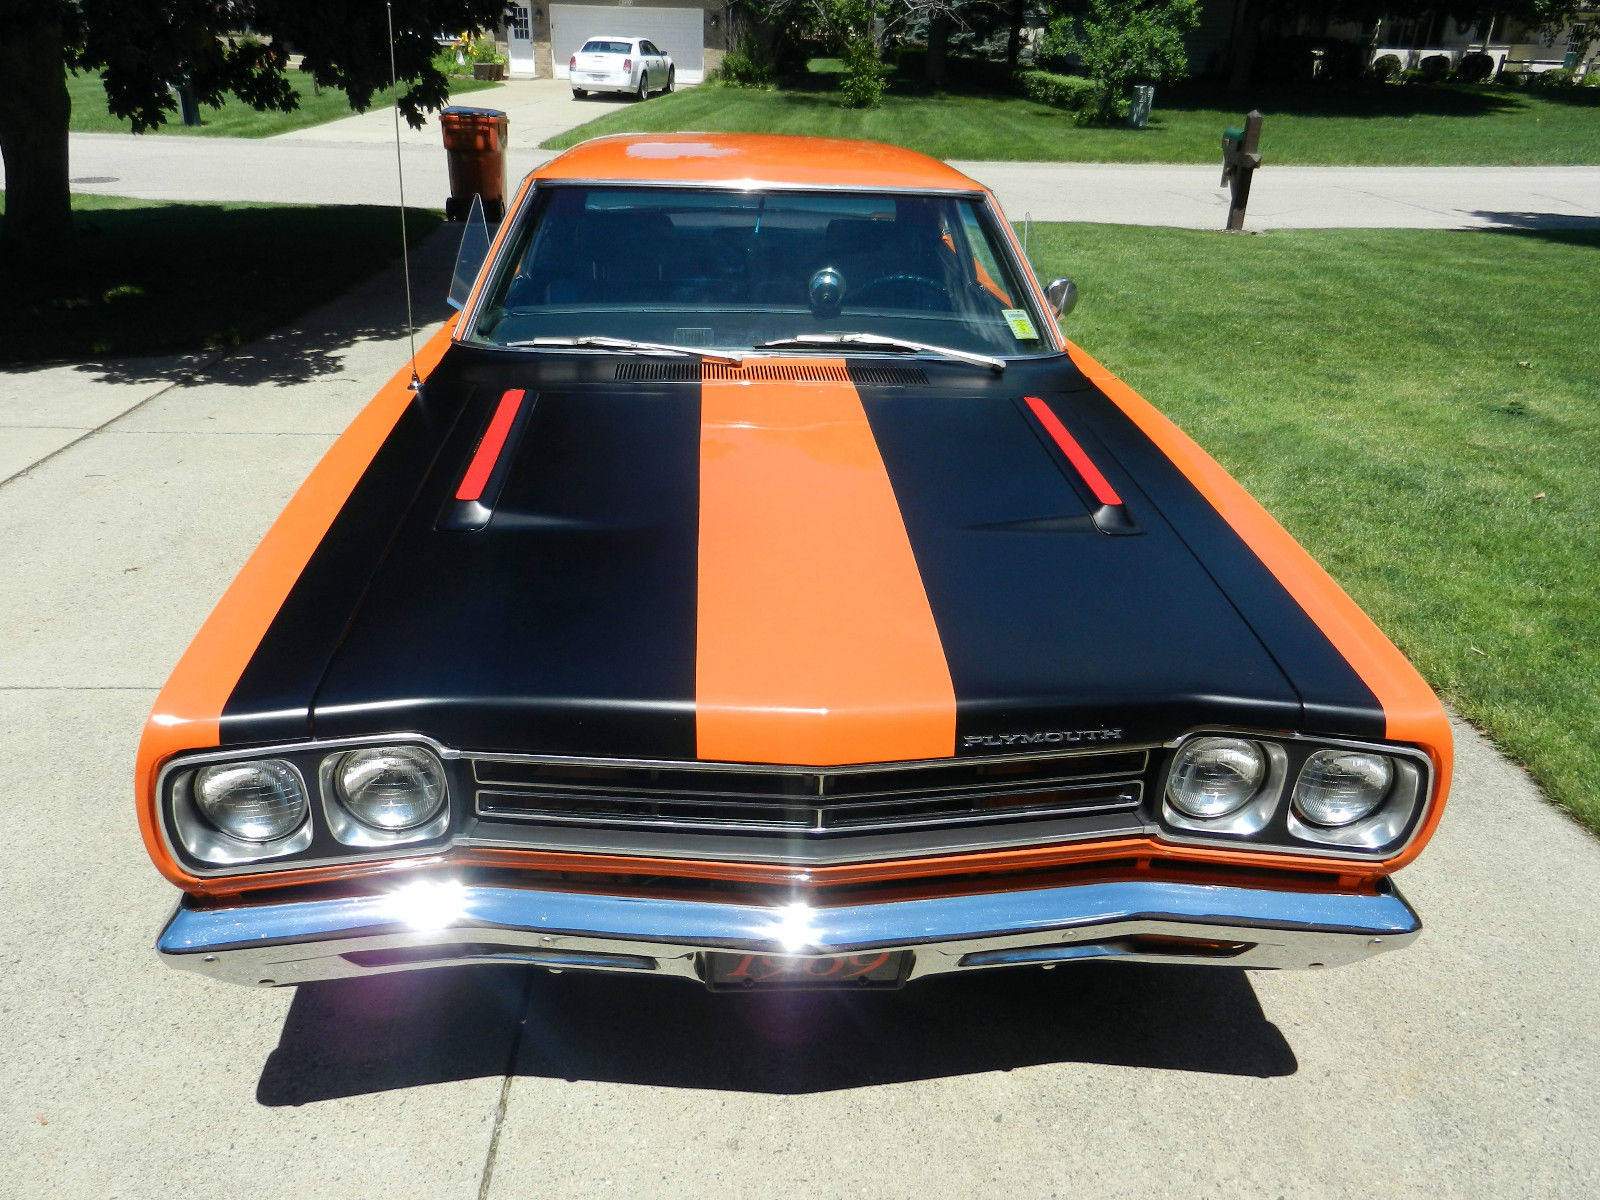 1969 Plymouth-14345234